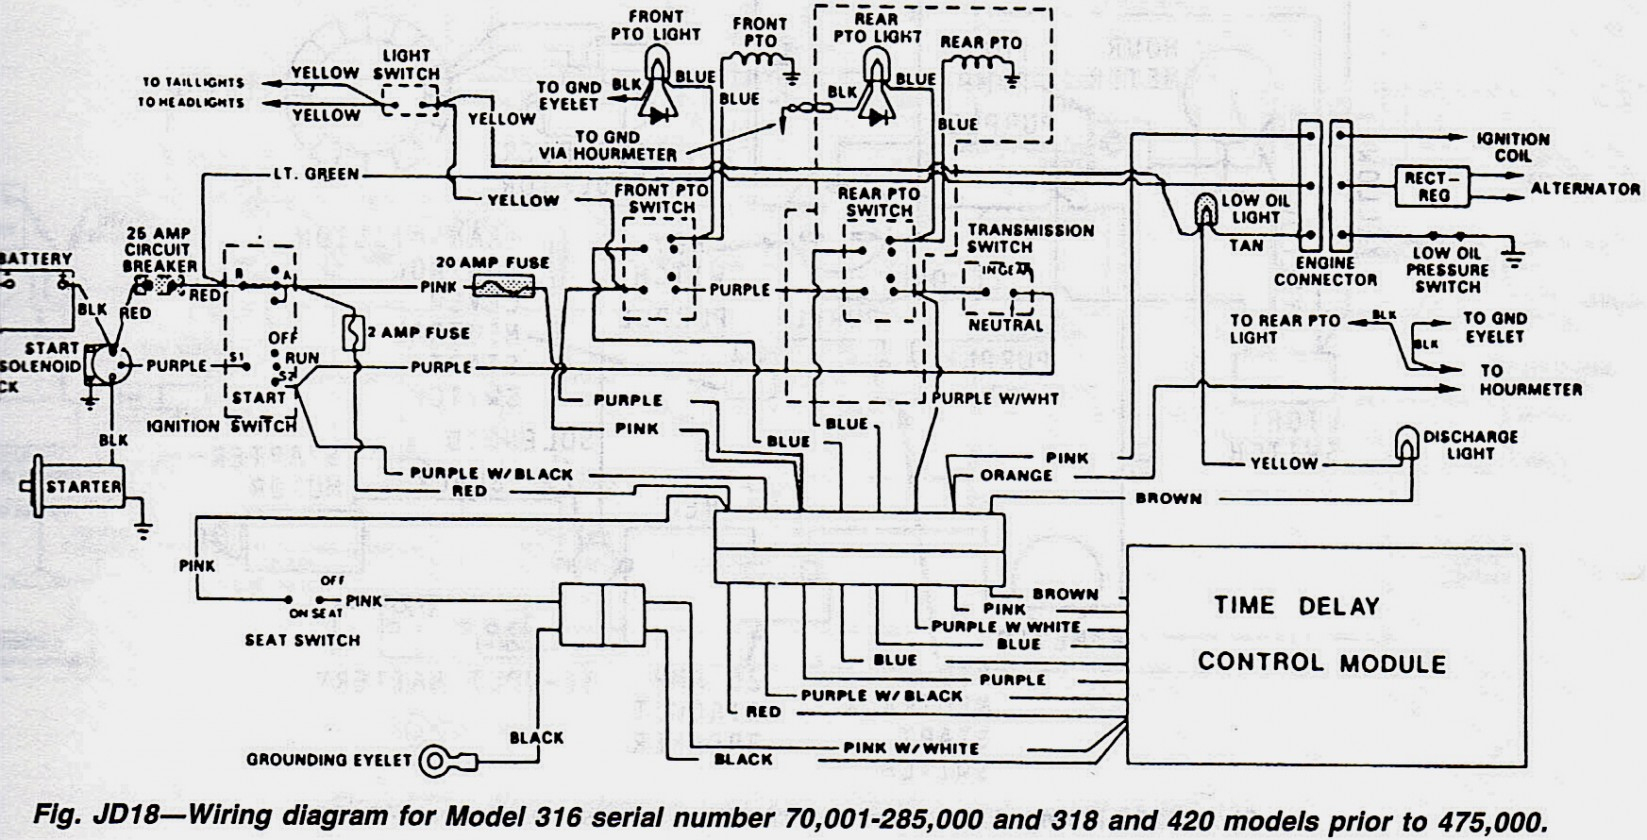 Jd 430 Wiring Diagram - Jd Wiring Diagram on